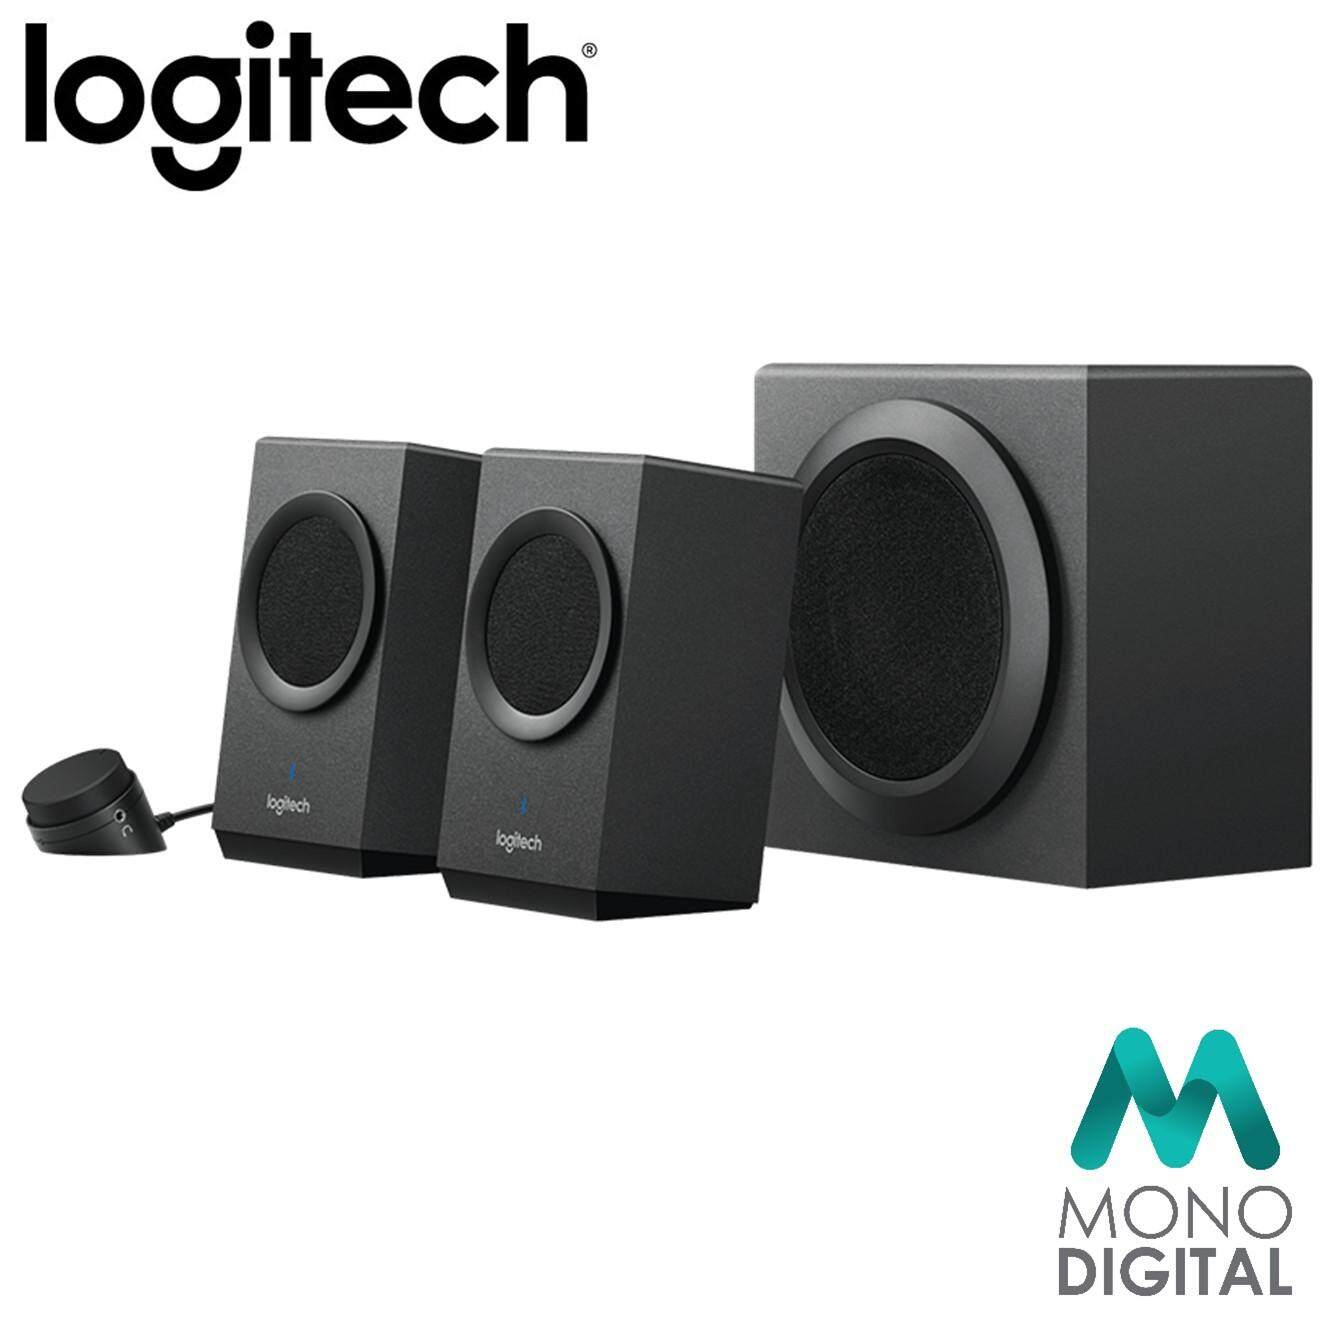 Logitech Z337 Speaker System With Bluetooth (980-001275) (Logitech Malaysia) Malaysia